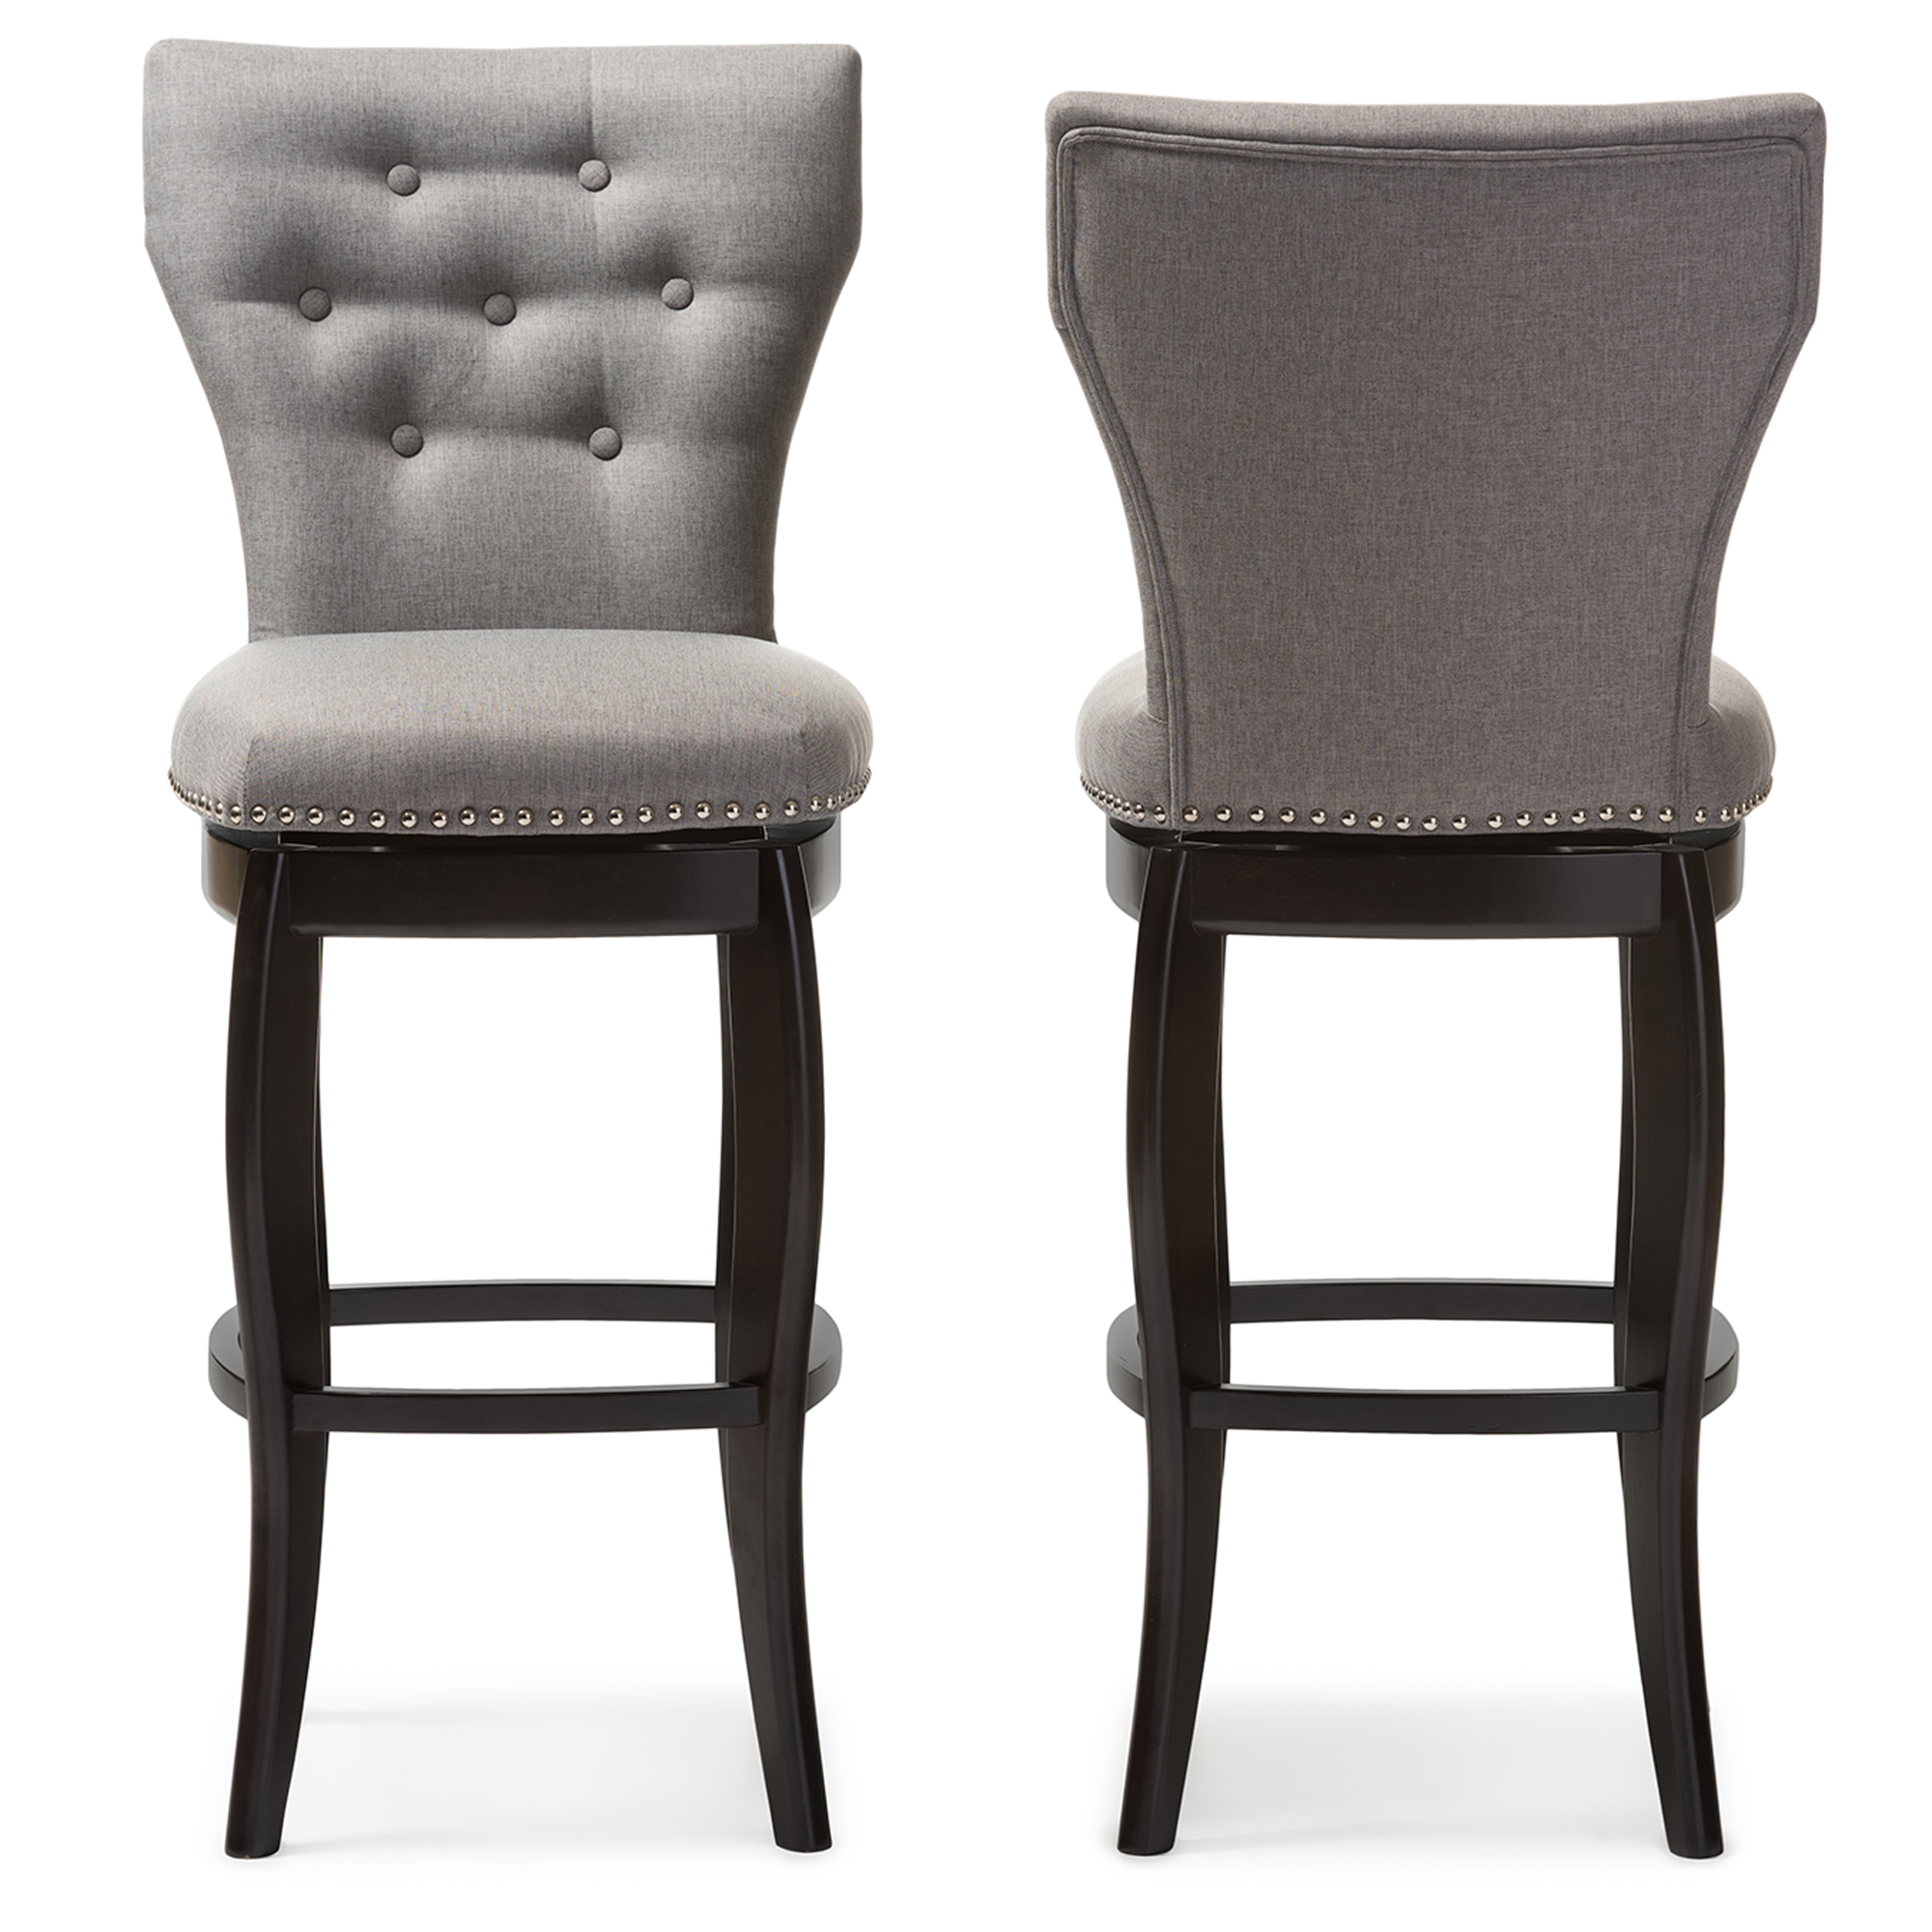 brown leather bar stools. Baxton Studio Leonice Modern And Contemporary Grey Fabric Brown Leather Bar Stools